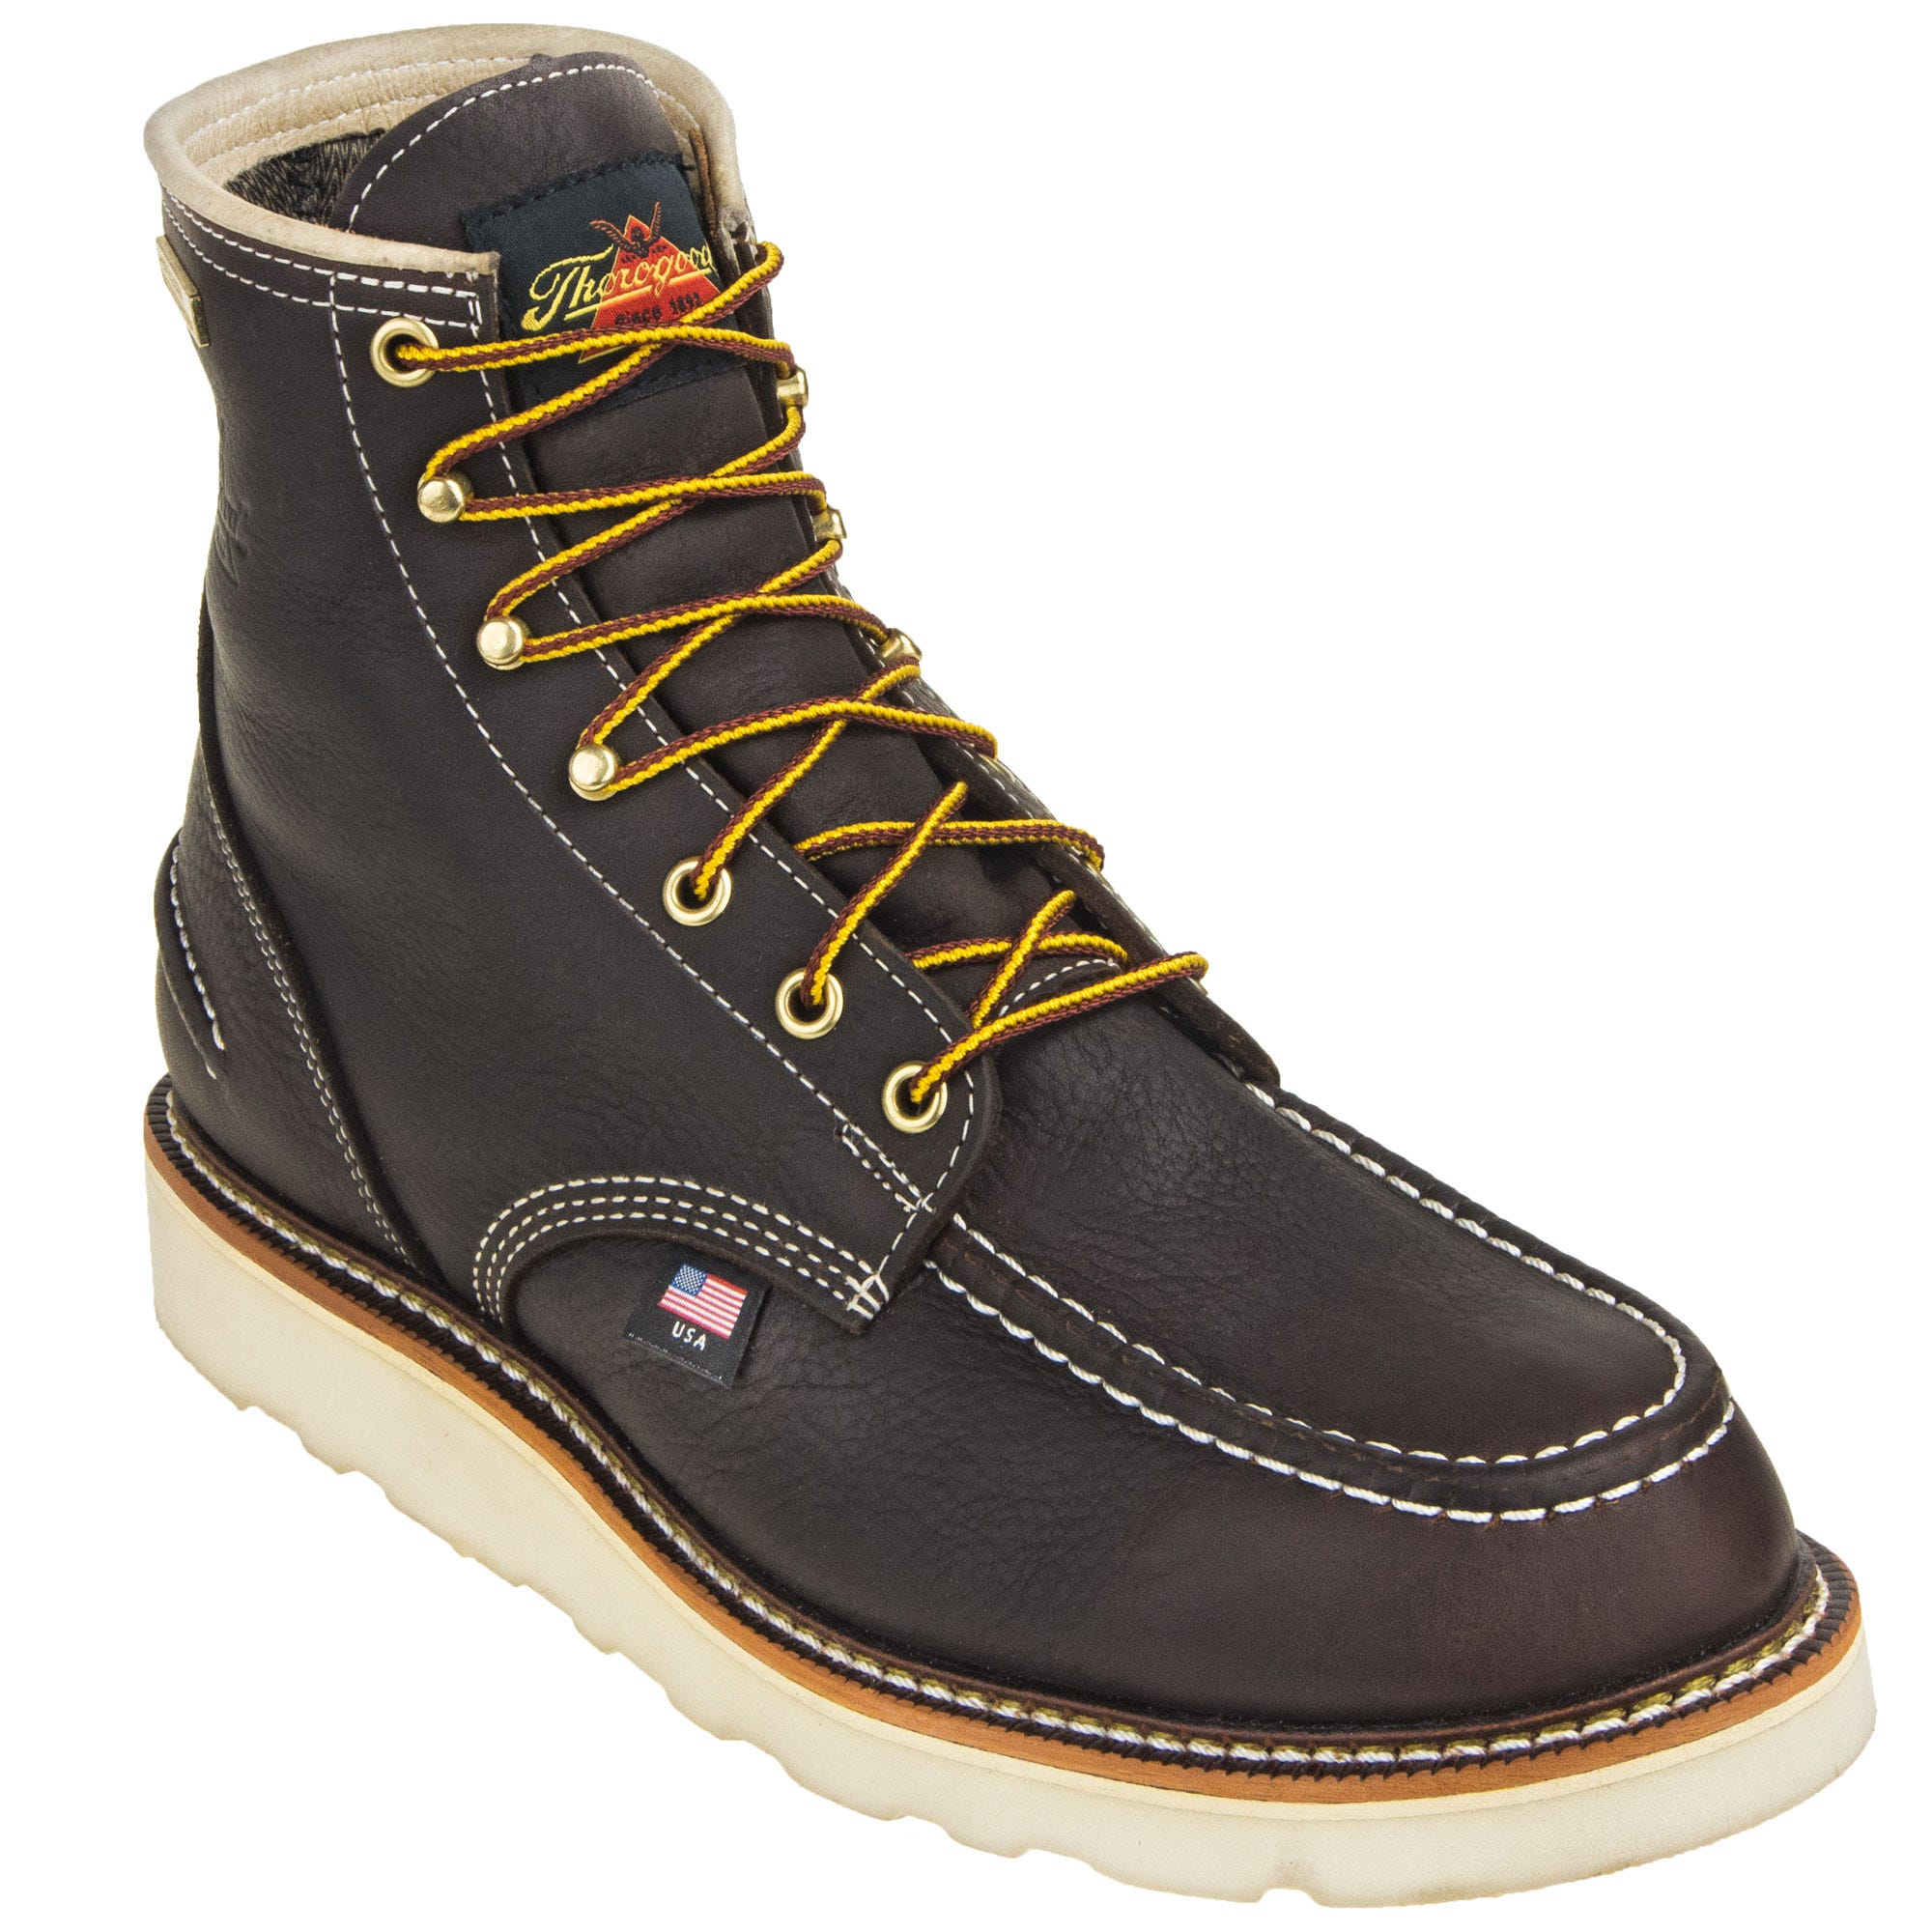 943b48f9dcf Thorogood Boots: Men's 814 3600 American Heritage Non Safety Moc Toe ...